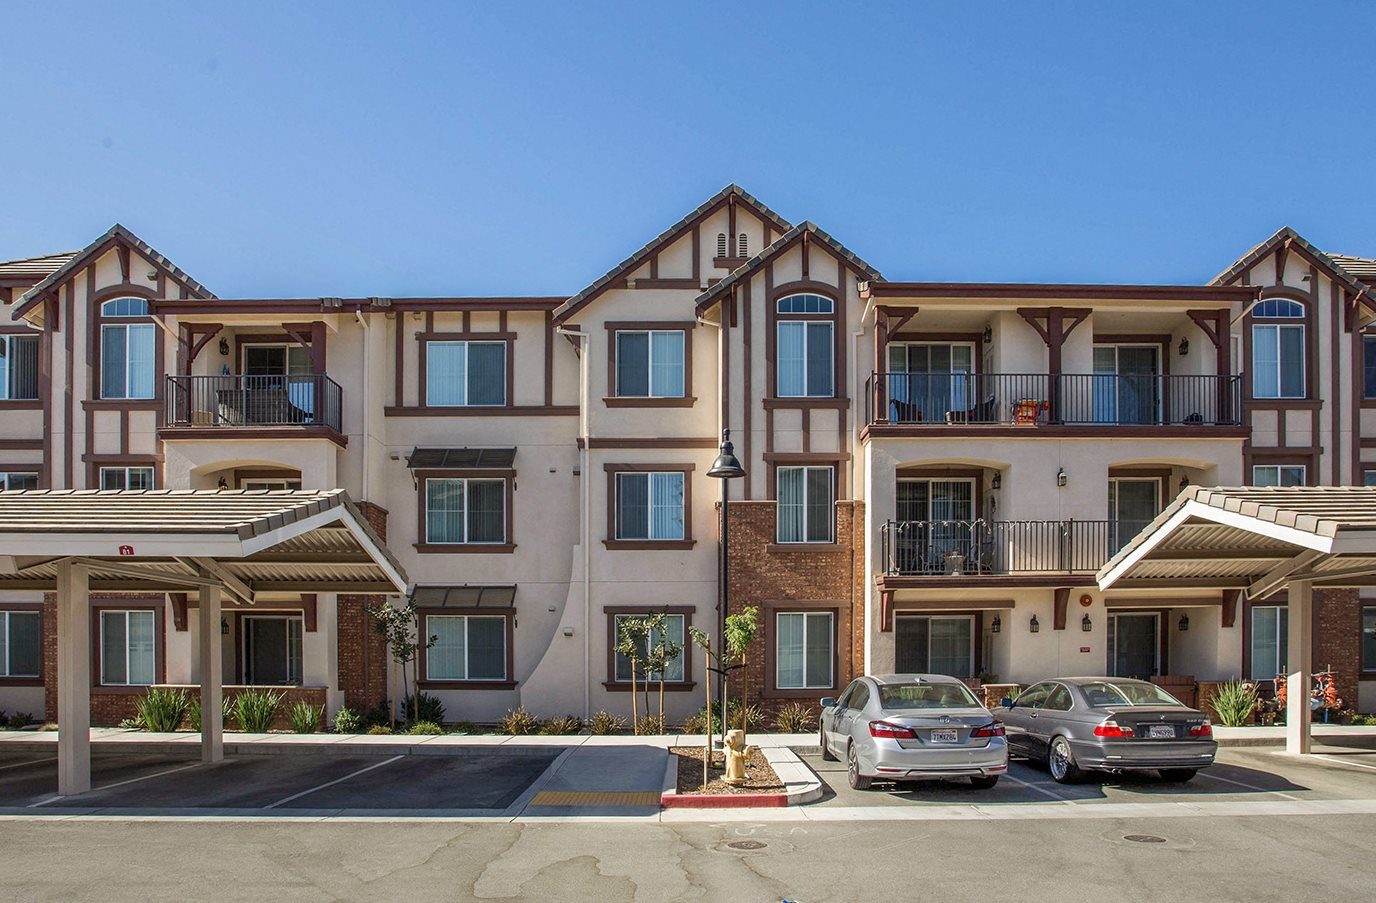 Exterior Apt buildings l Diamond Creek Apartments l Apartments in Morgan Hill